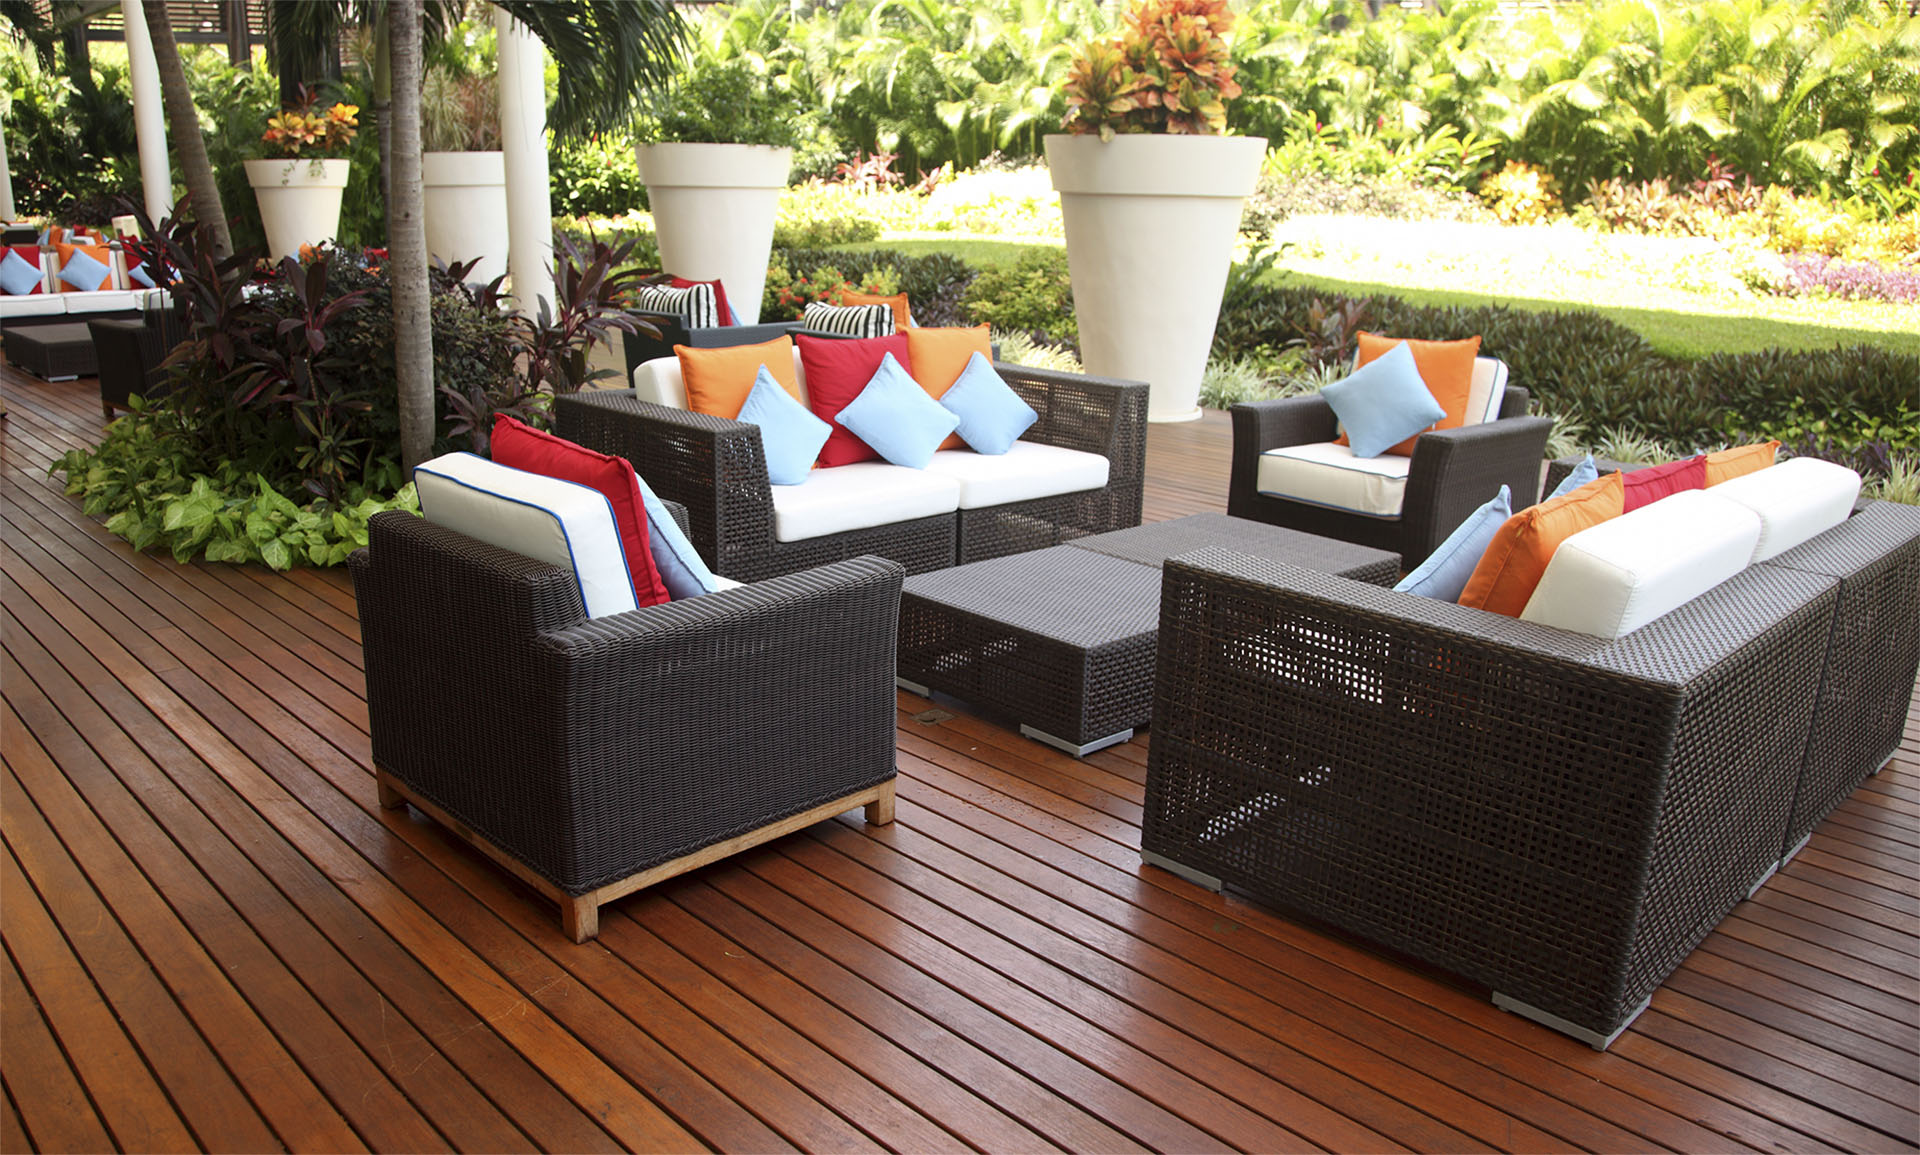 outdoors cushions canvas to cleaner furniture and how patios clean diy decks patio tos